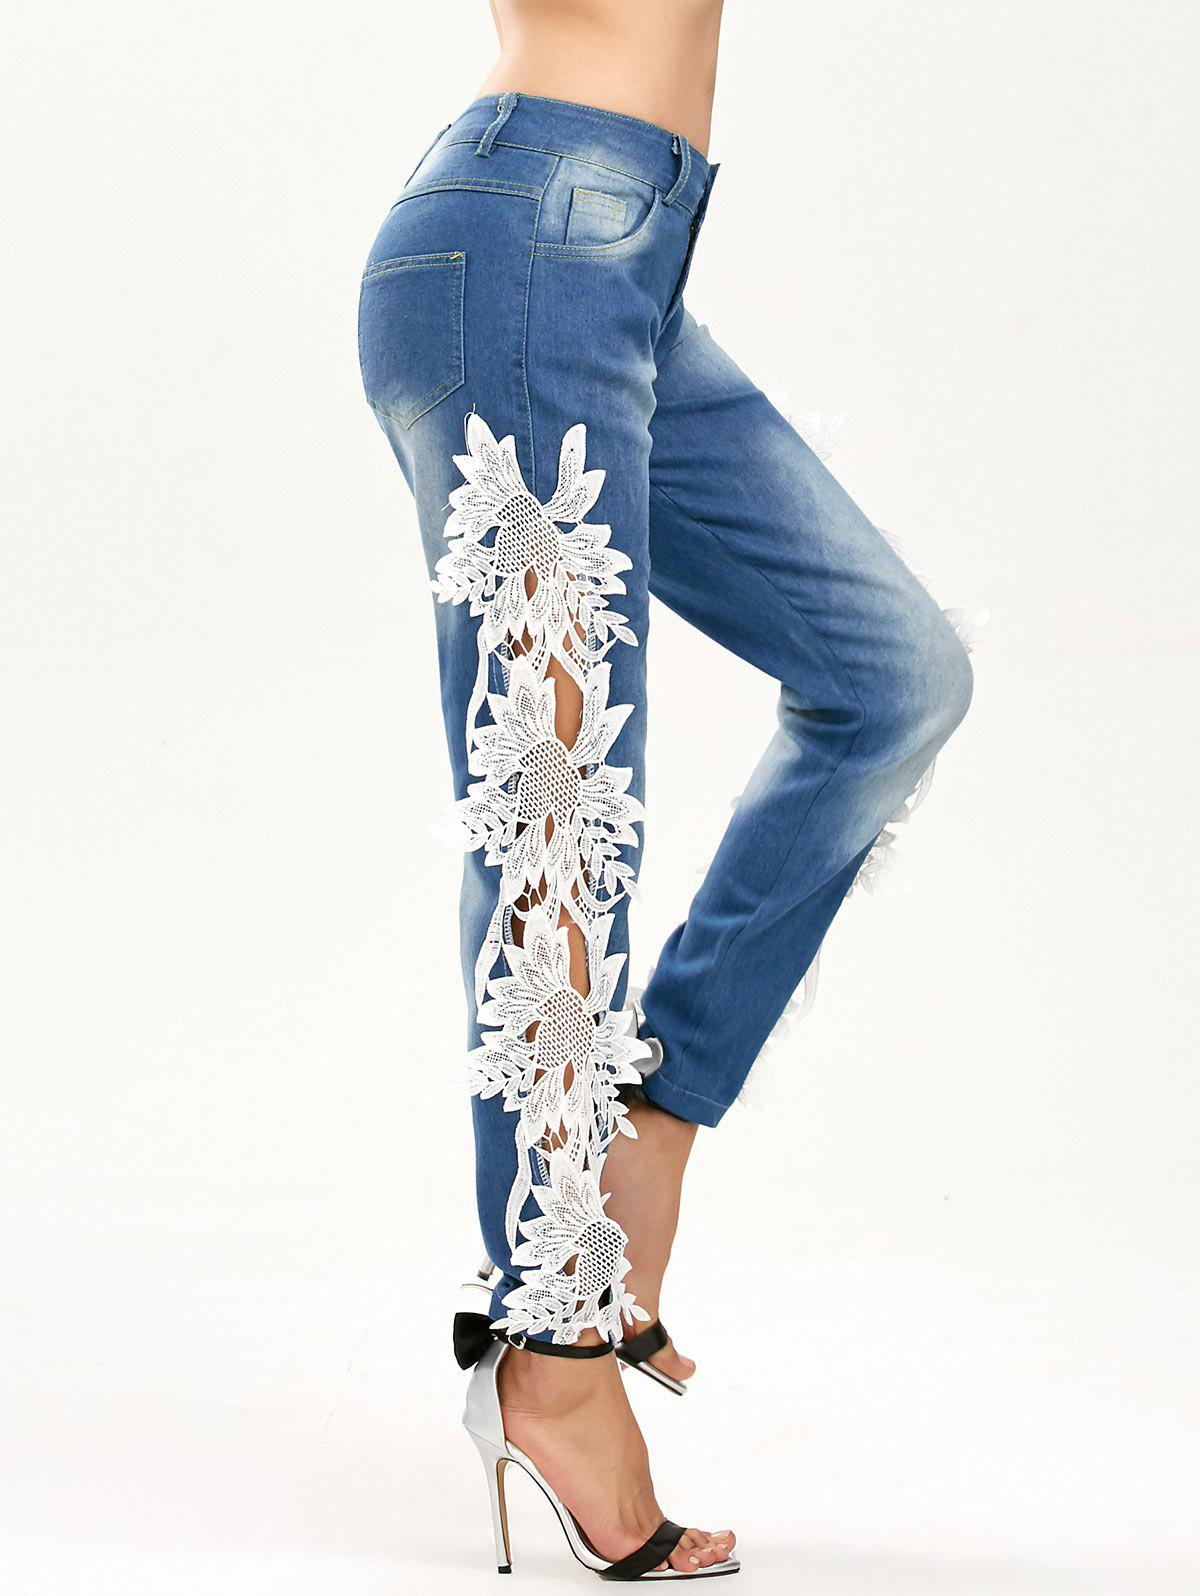 Hollow Out Lace Panel Jeans - BLUE/WHITE M